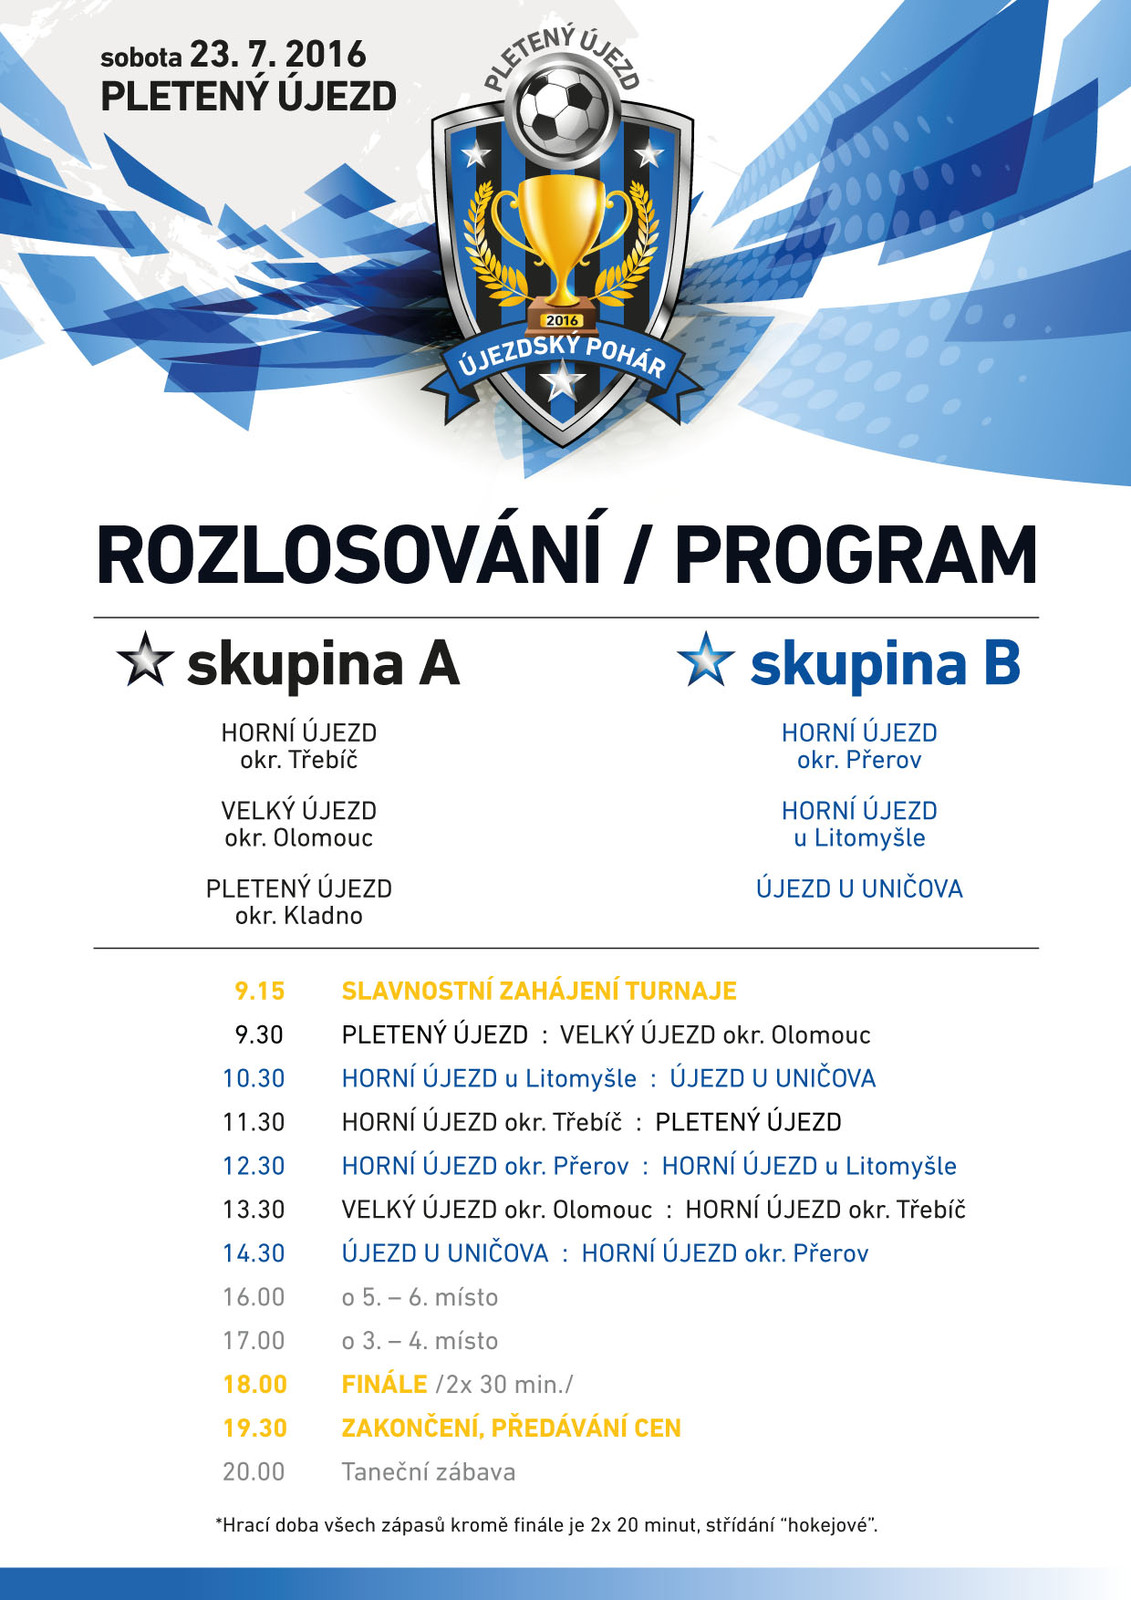 ÚJEZDY 2016 program.jpg